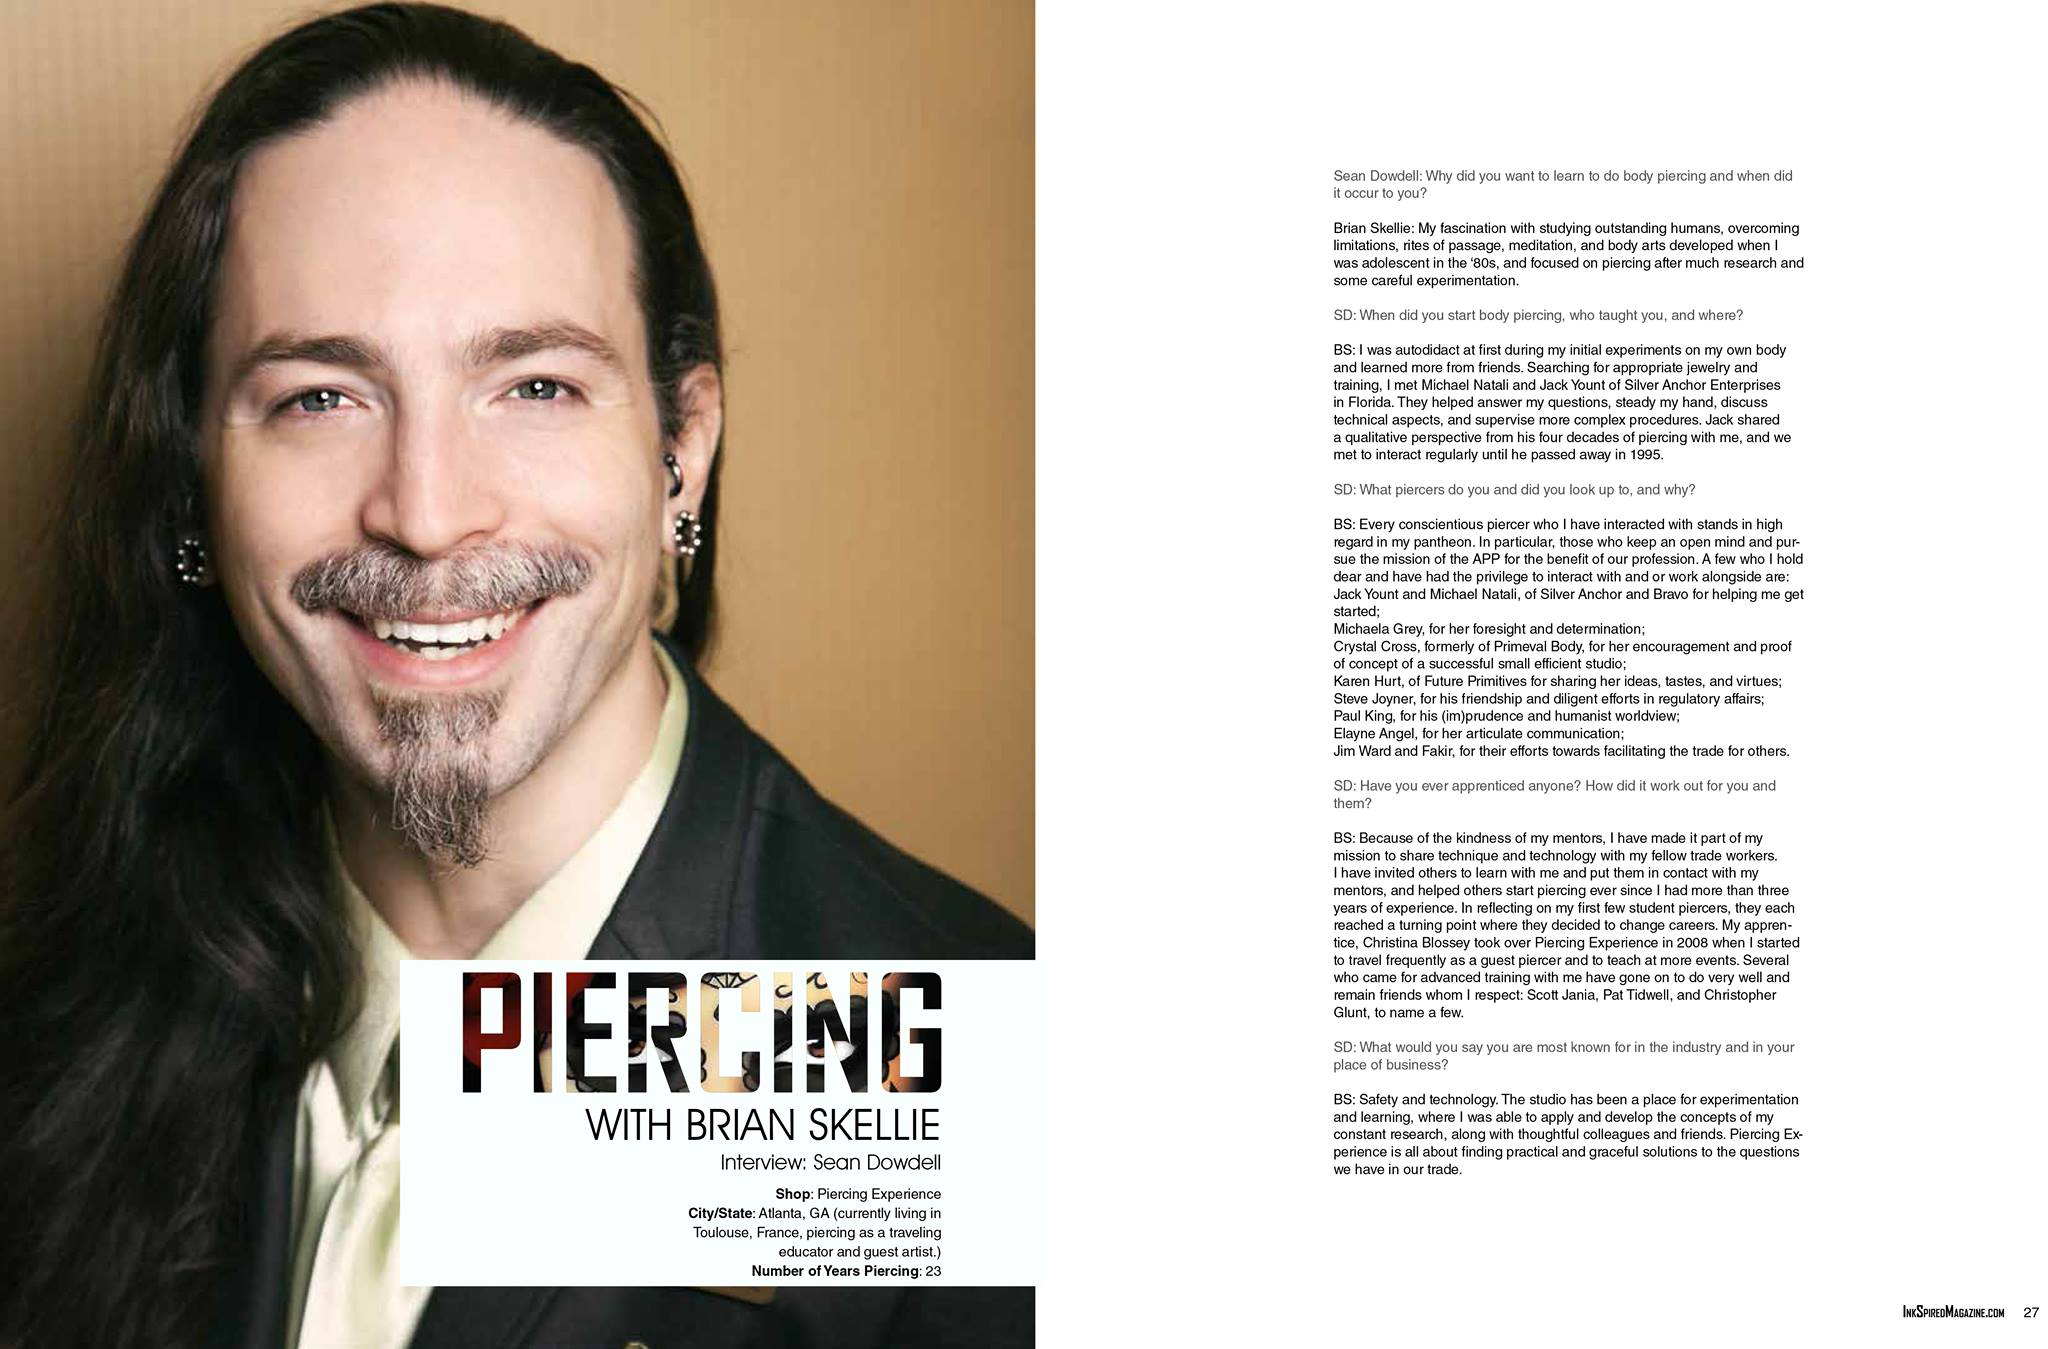 Interview by Sean Dowdell for InkSpired magazine